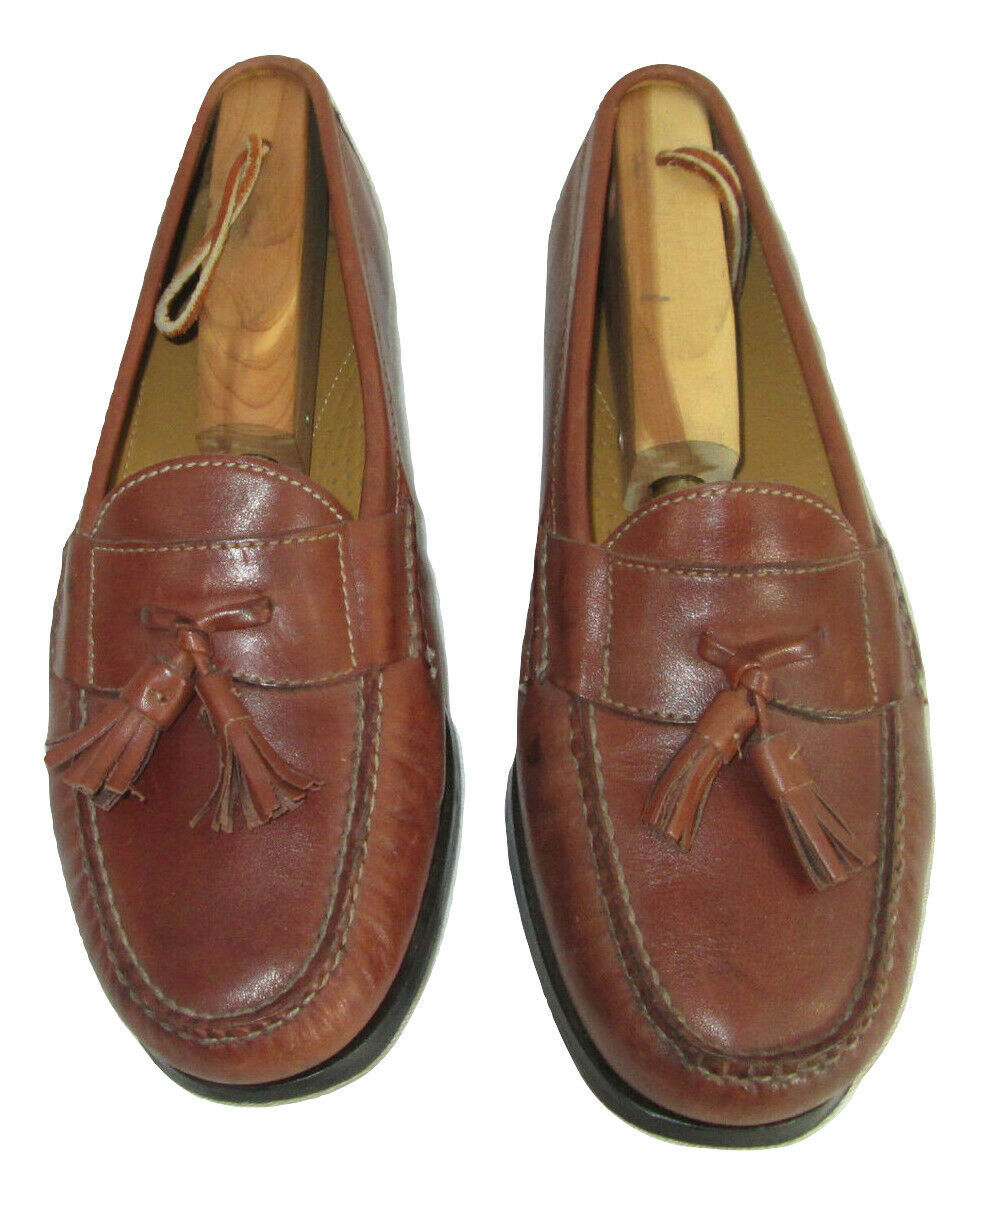 Cole Haan Shoes Size 7.5 Loafers Mens Brown Leather Tassels C06982 India  image 4